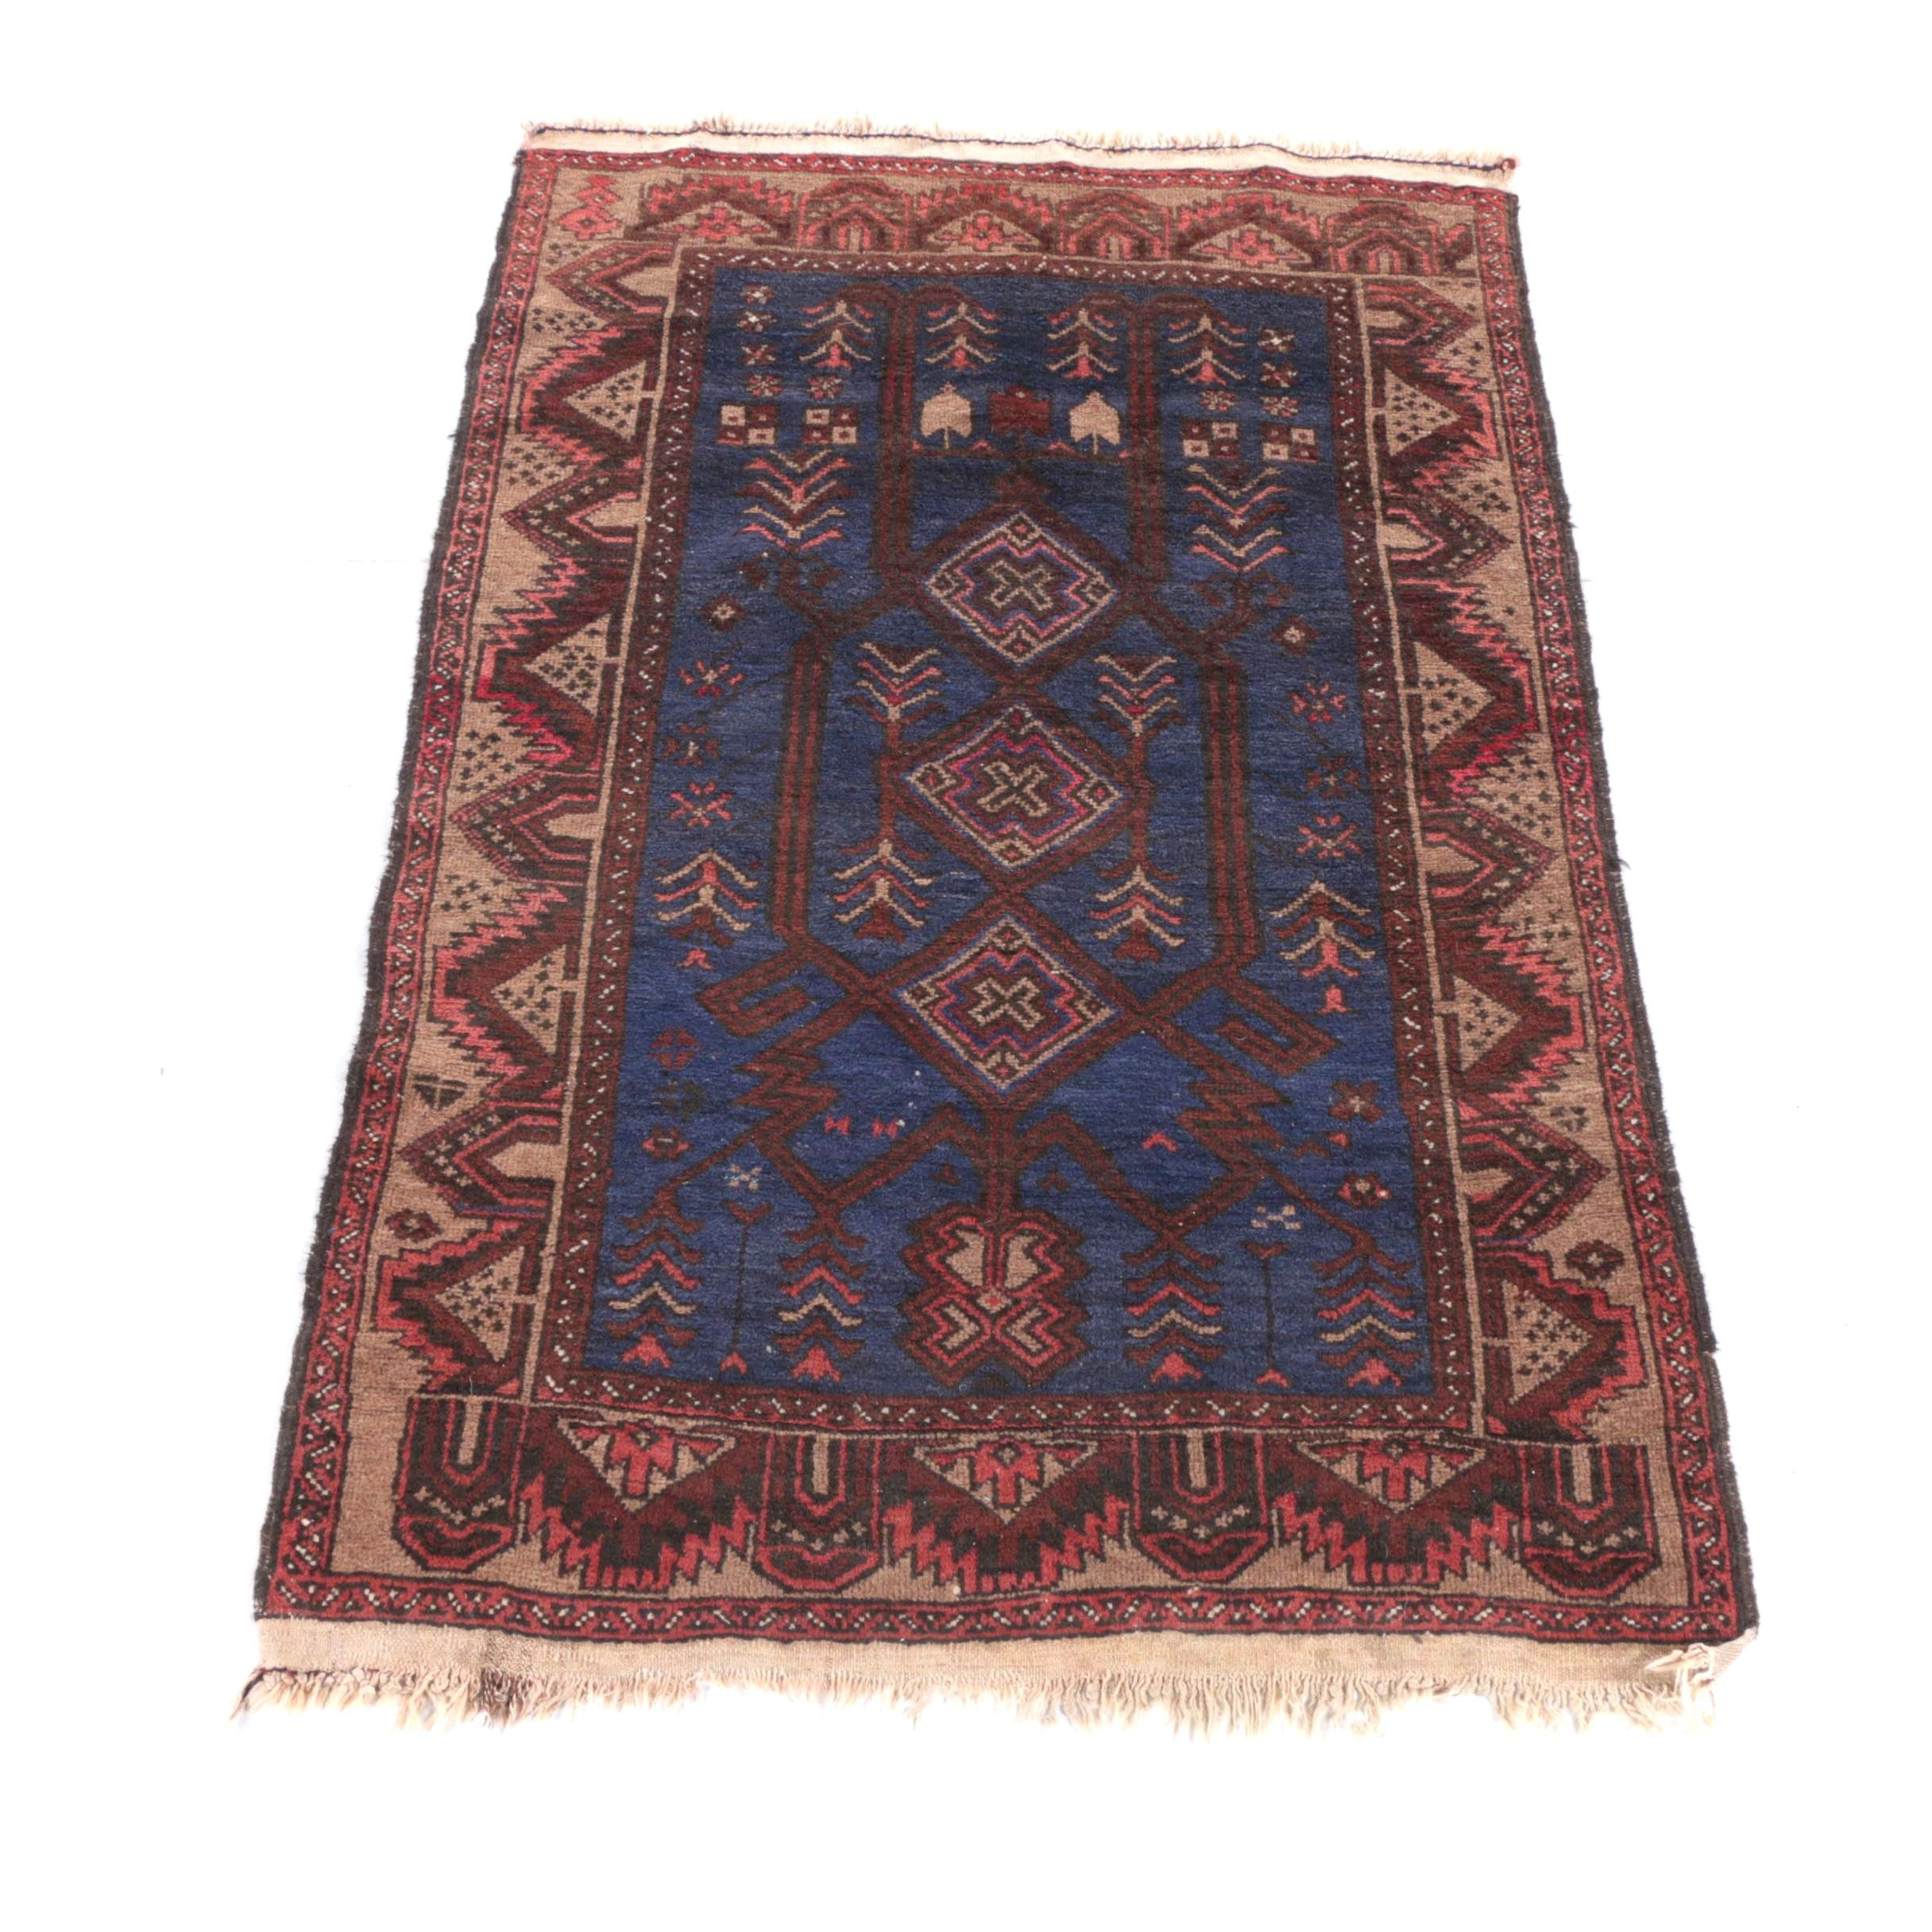 Vintage Hand-Knotted Shiraz Wool Prayer Rug